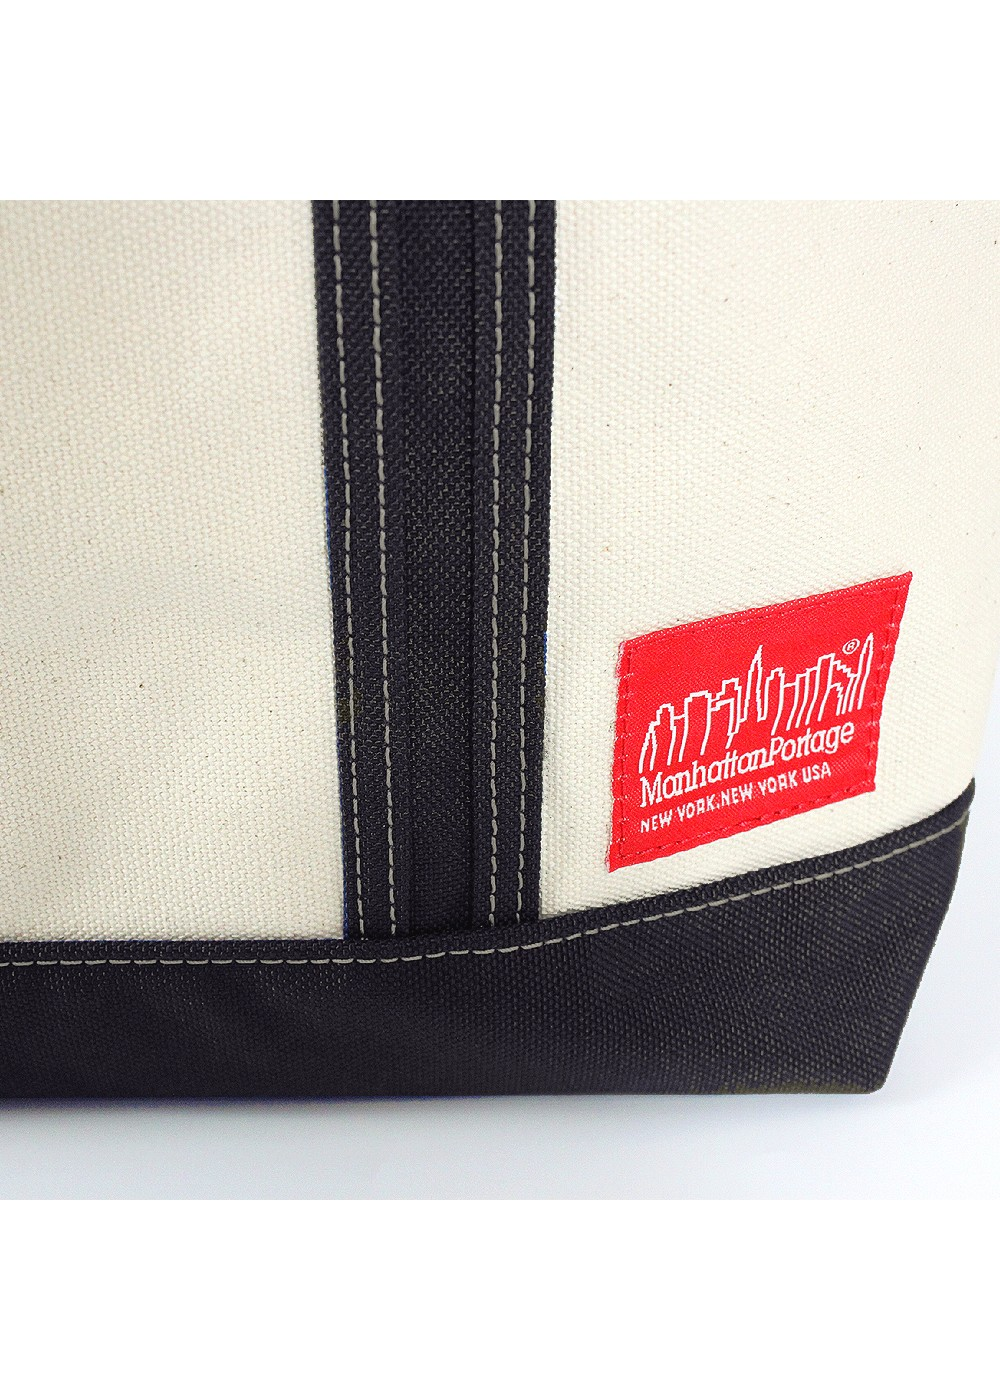 Duck Fabric Tote Bag|迷彩|トートバッグ|Manhattan Portage